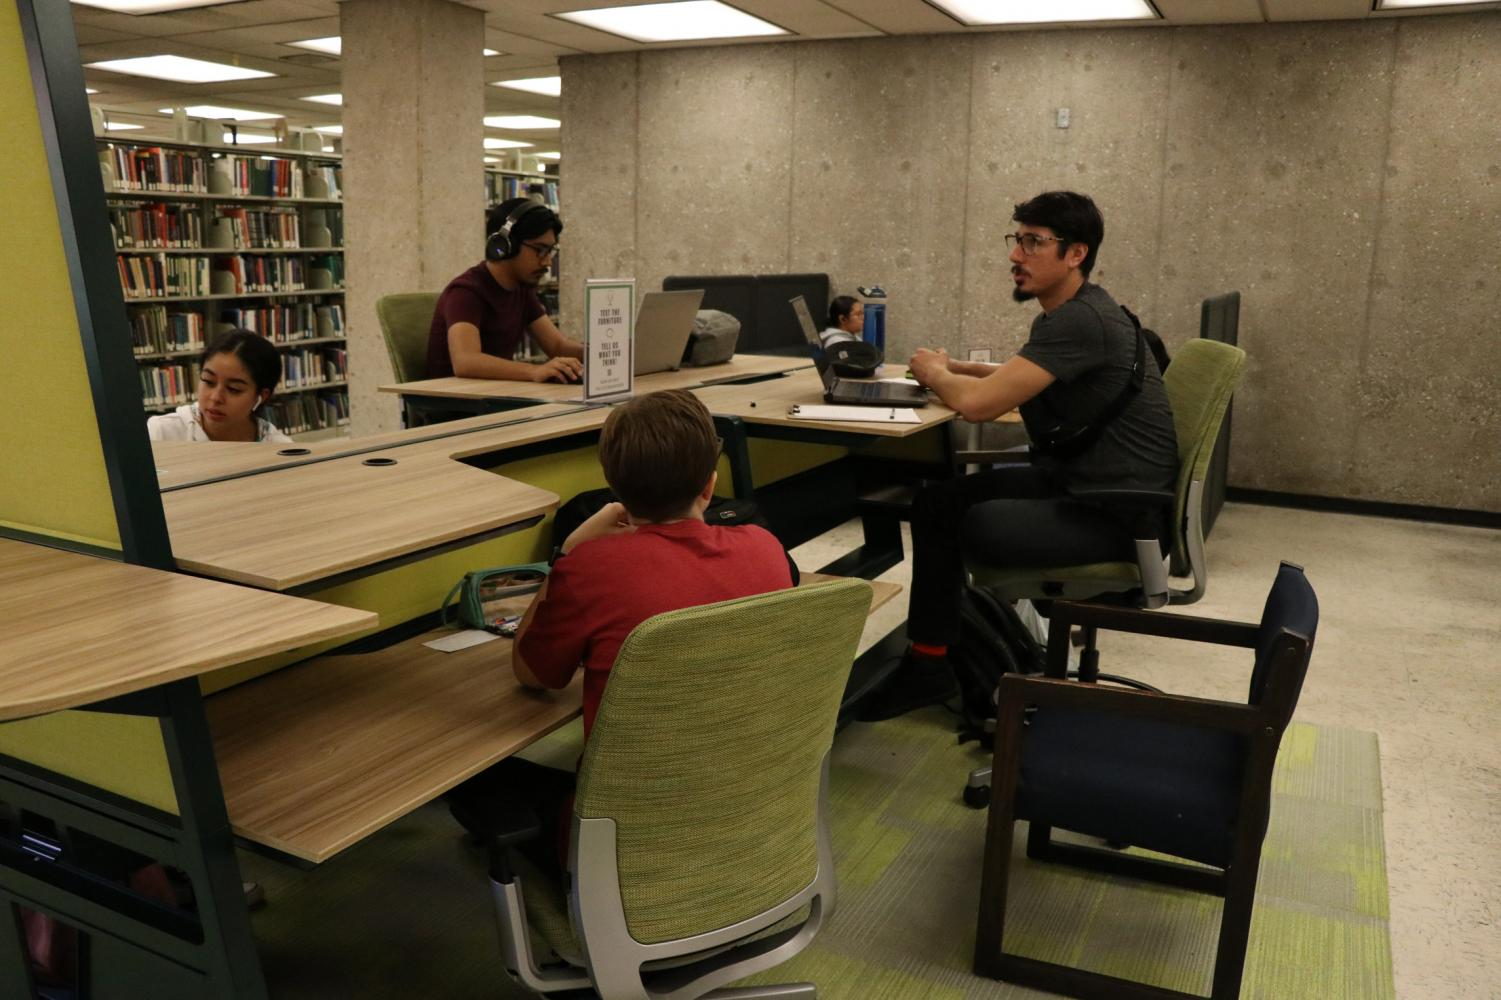 New multilevel desks are tested by students in the north library, allowing for students to sit in different ways depending on what they find comfortable.